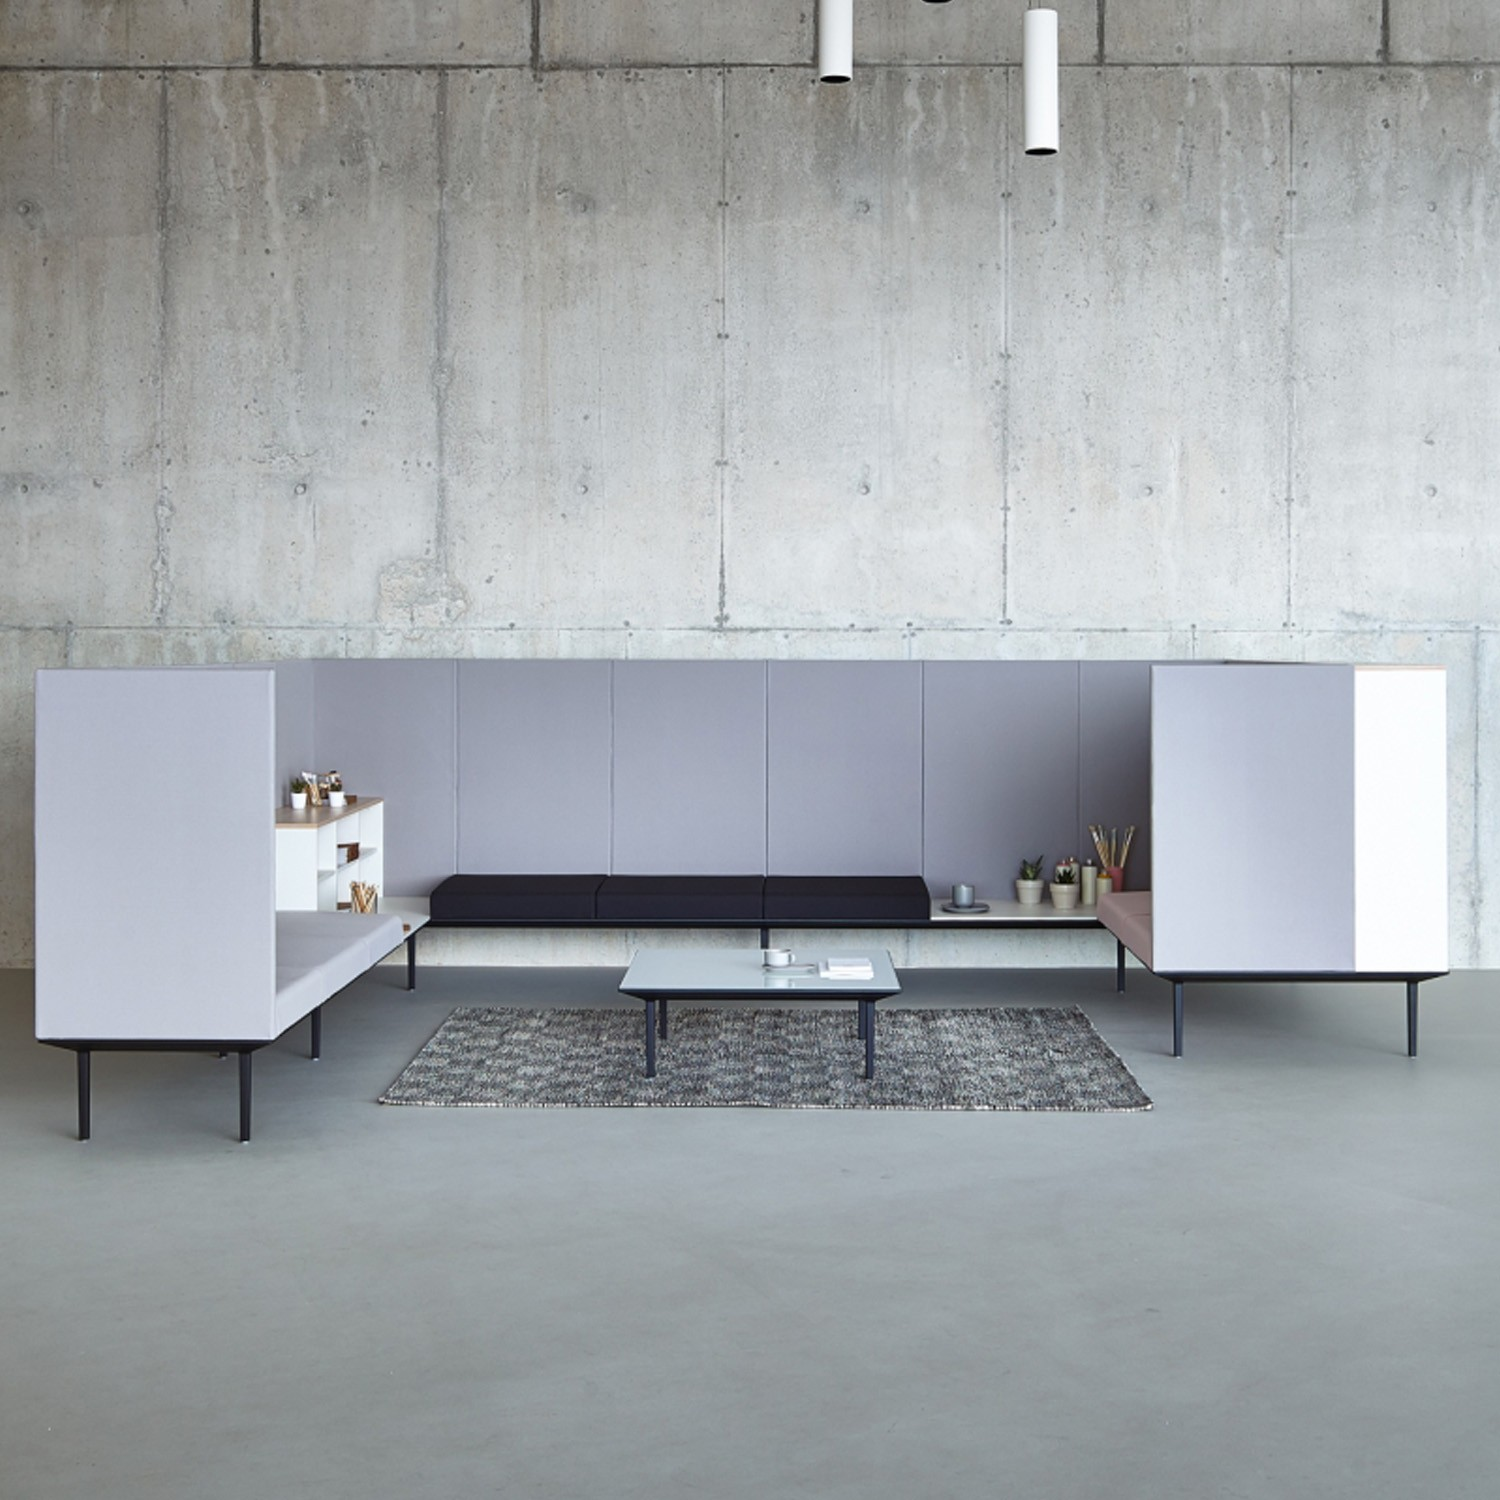 actiu-longo-modular-furniture-04.jpg